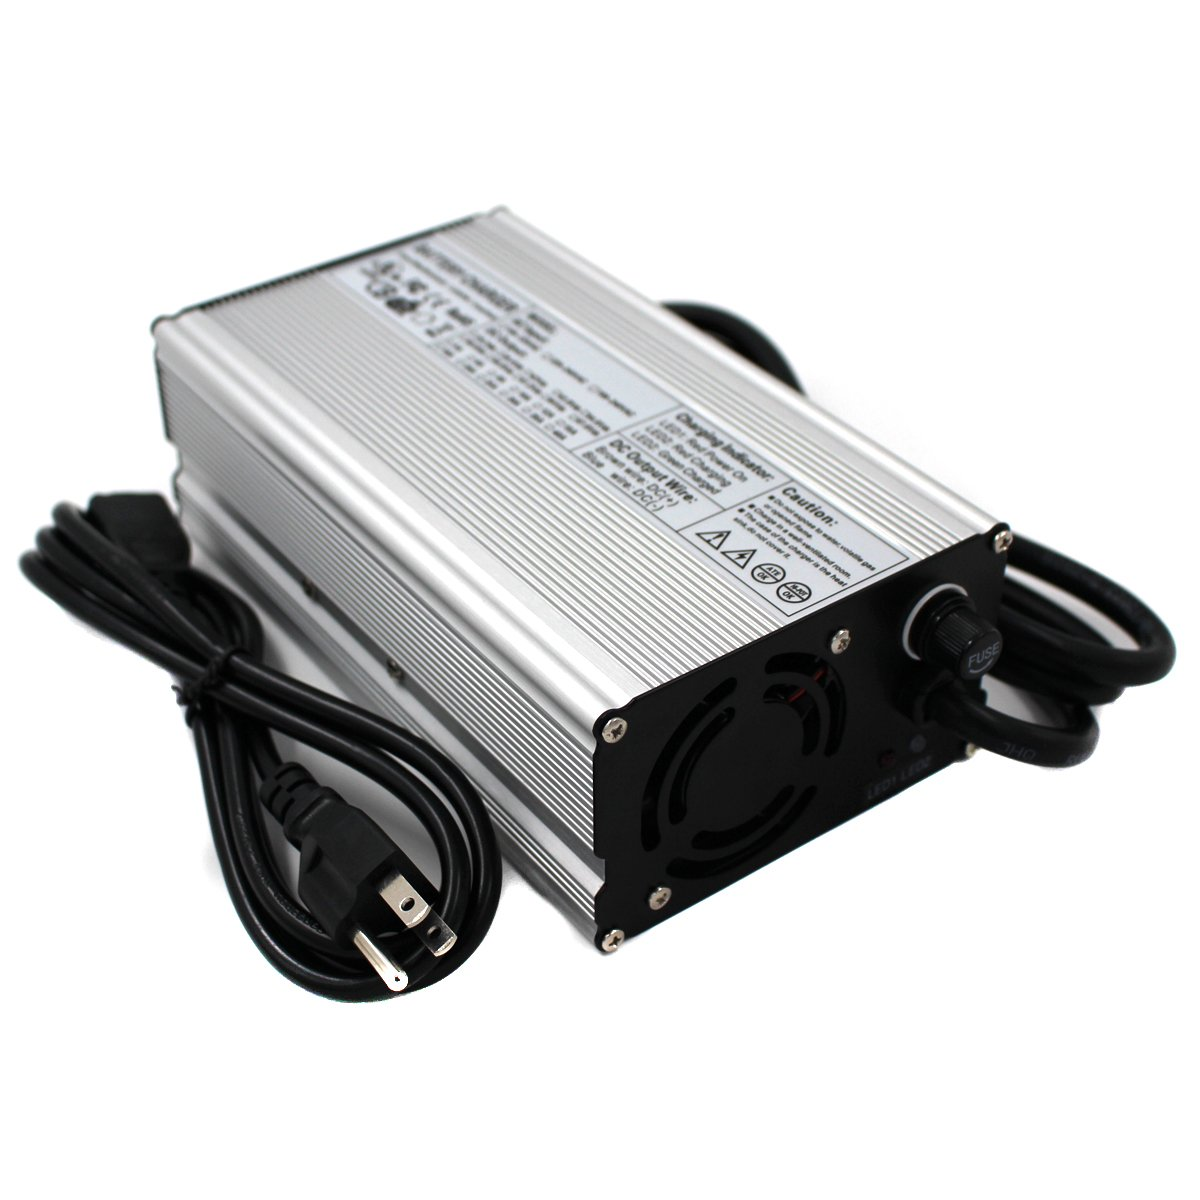 25.2V 16A Charger 25.2V 6S Li-ion Battery Charger Output 22.2V With Fan Aluminum Shell Smart Charger